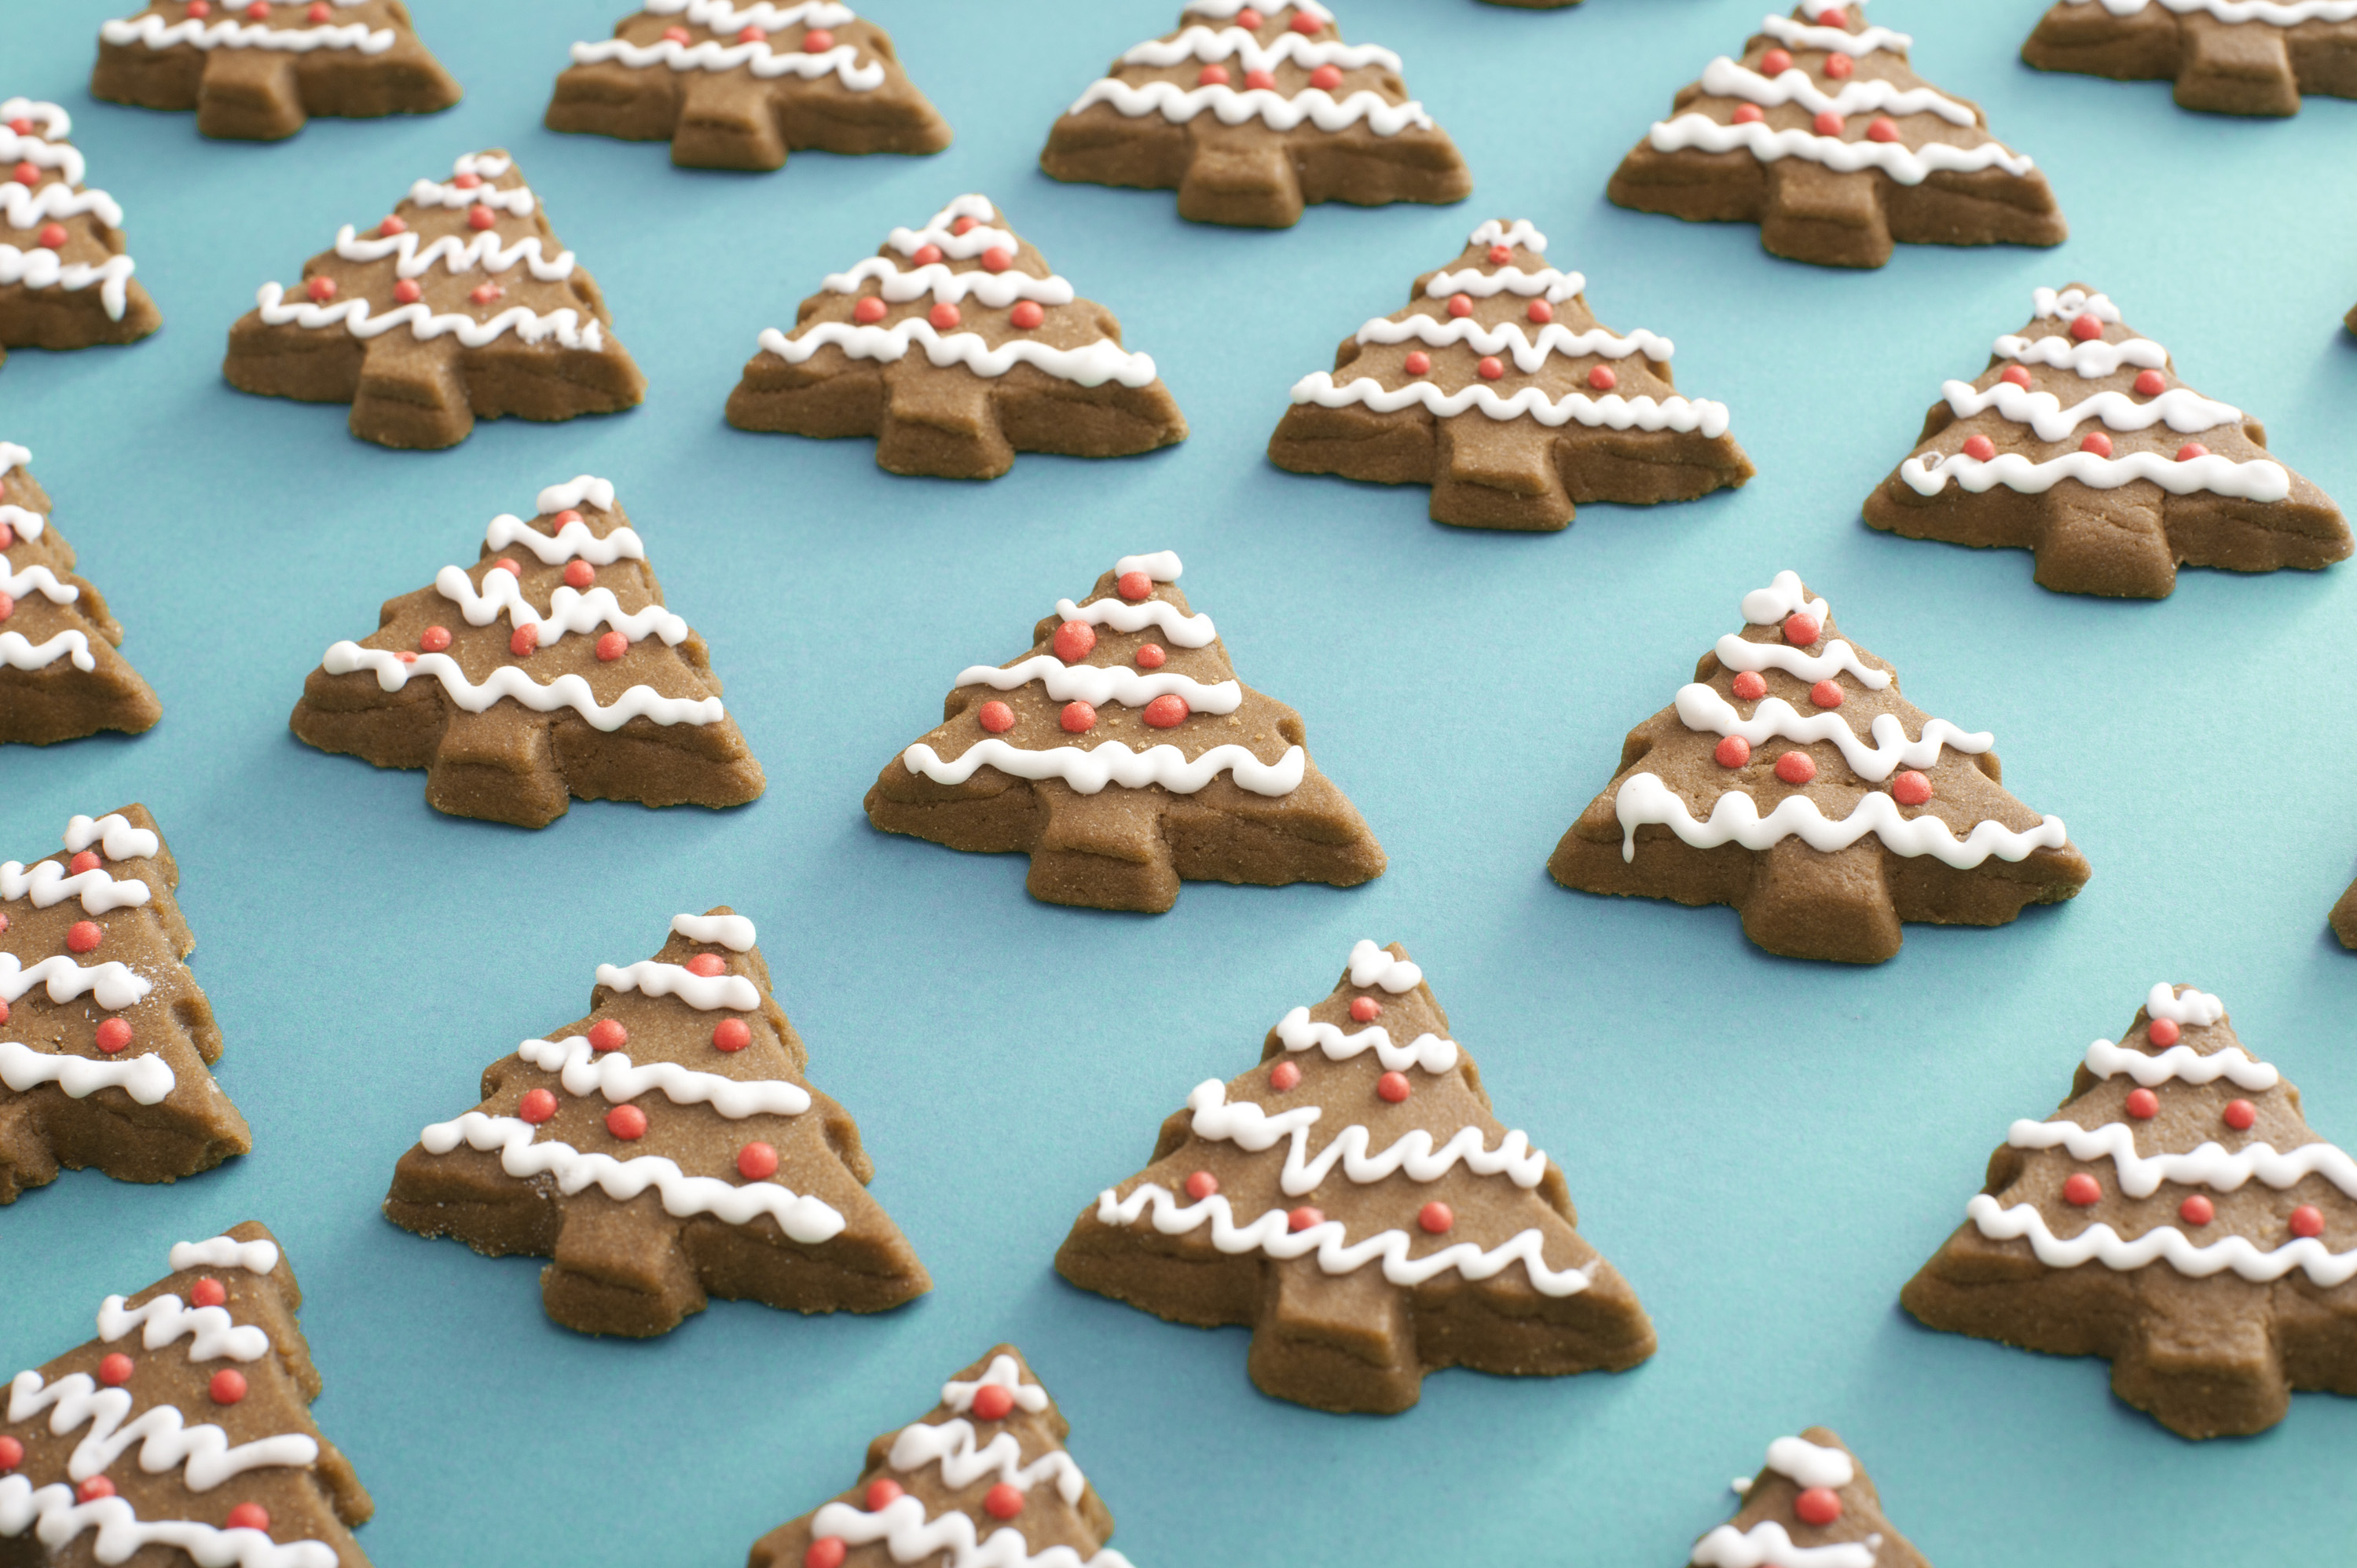 iced gingerbread christmas tree cookie background neatly laid out on a blue background in a high - Gingerbread Christmas Tree